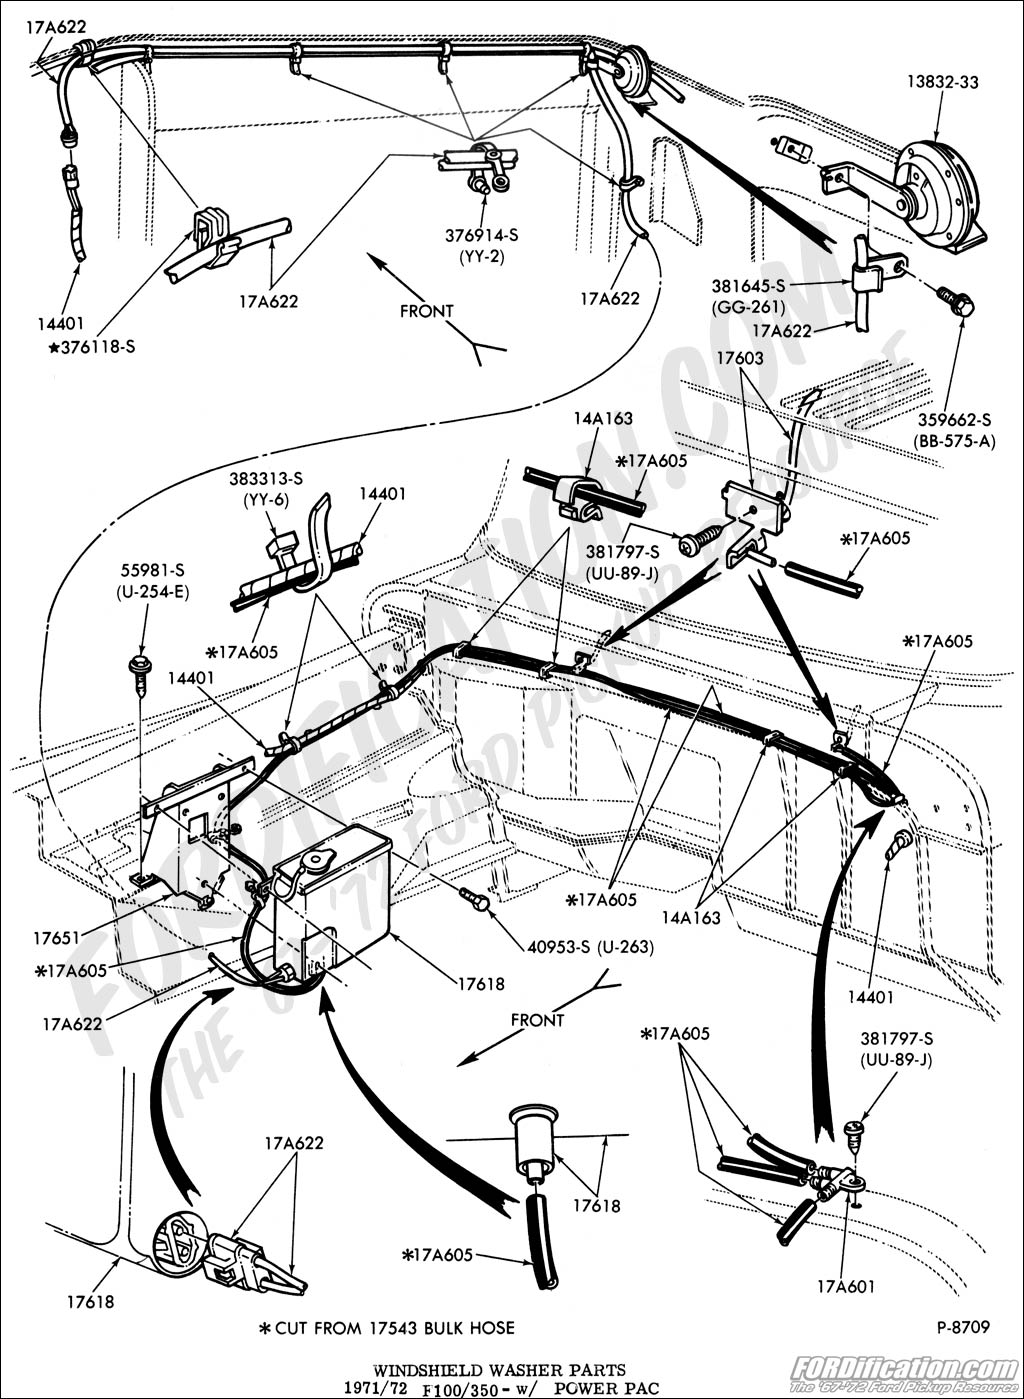 1965 Mustang Wiper Motor Diagram Real Wiring Schematic Ford Super Duty Wire Center U2022 Rh 207 246 123 107 Mounts 1966 Windshield